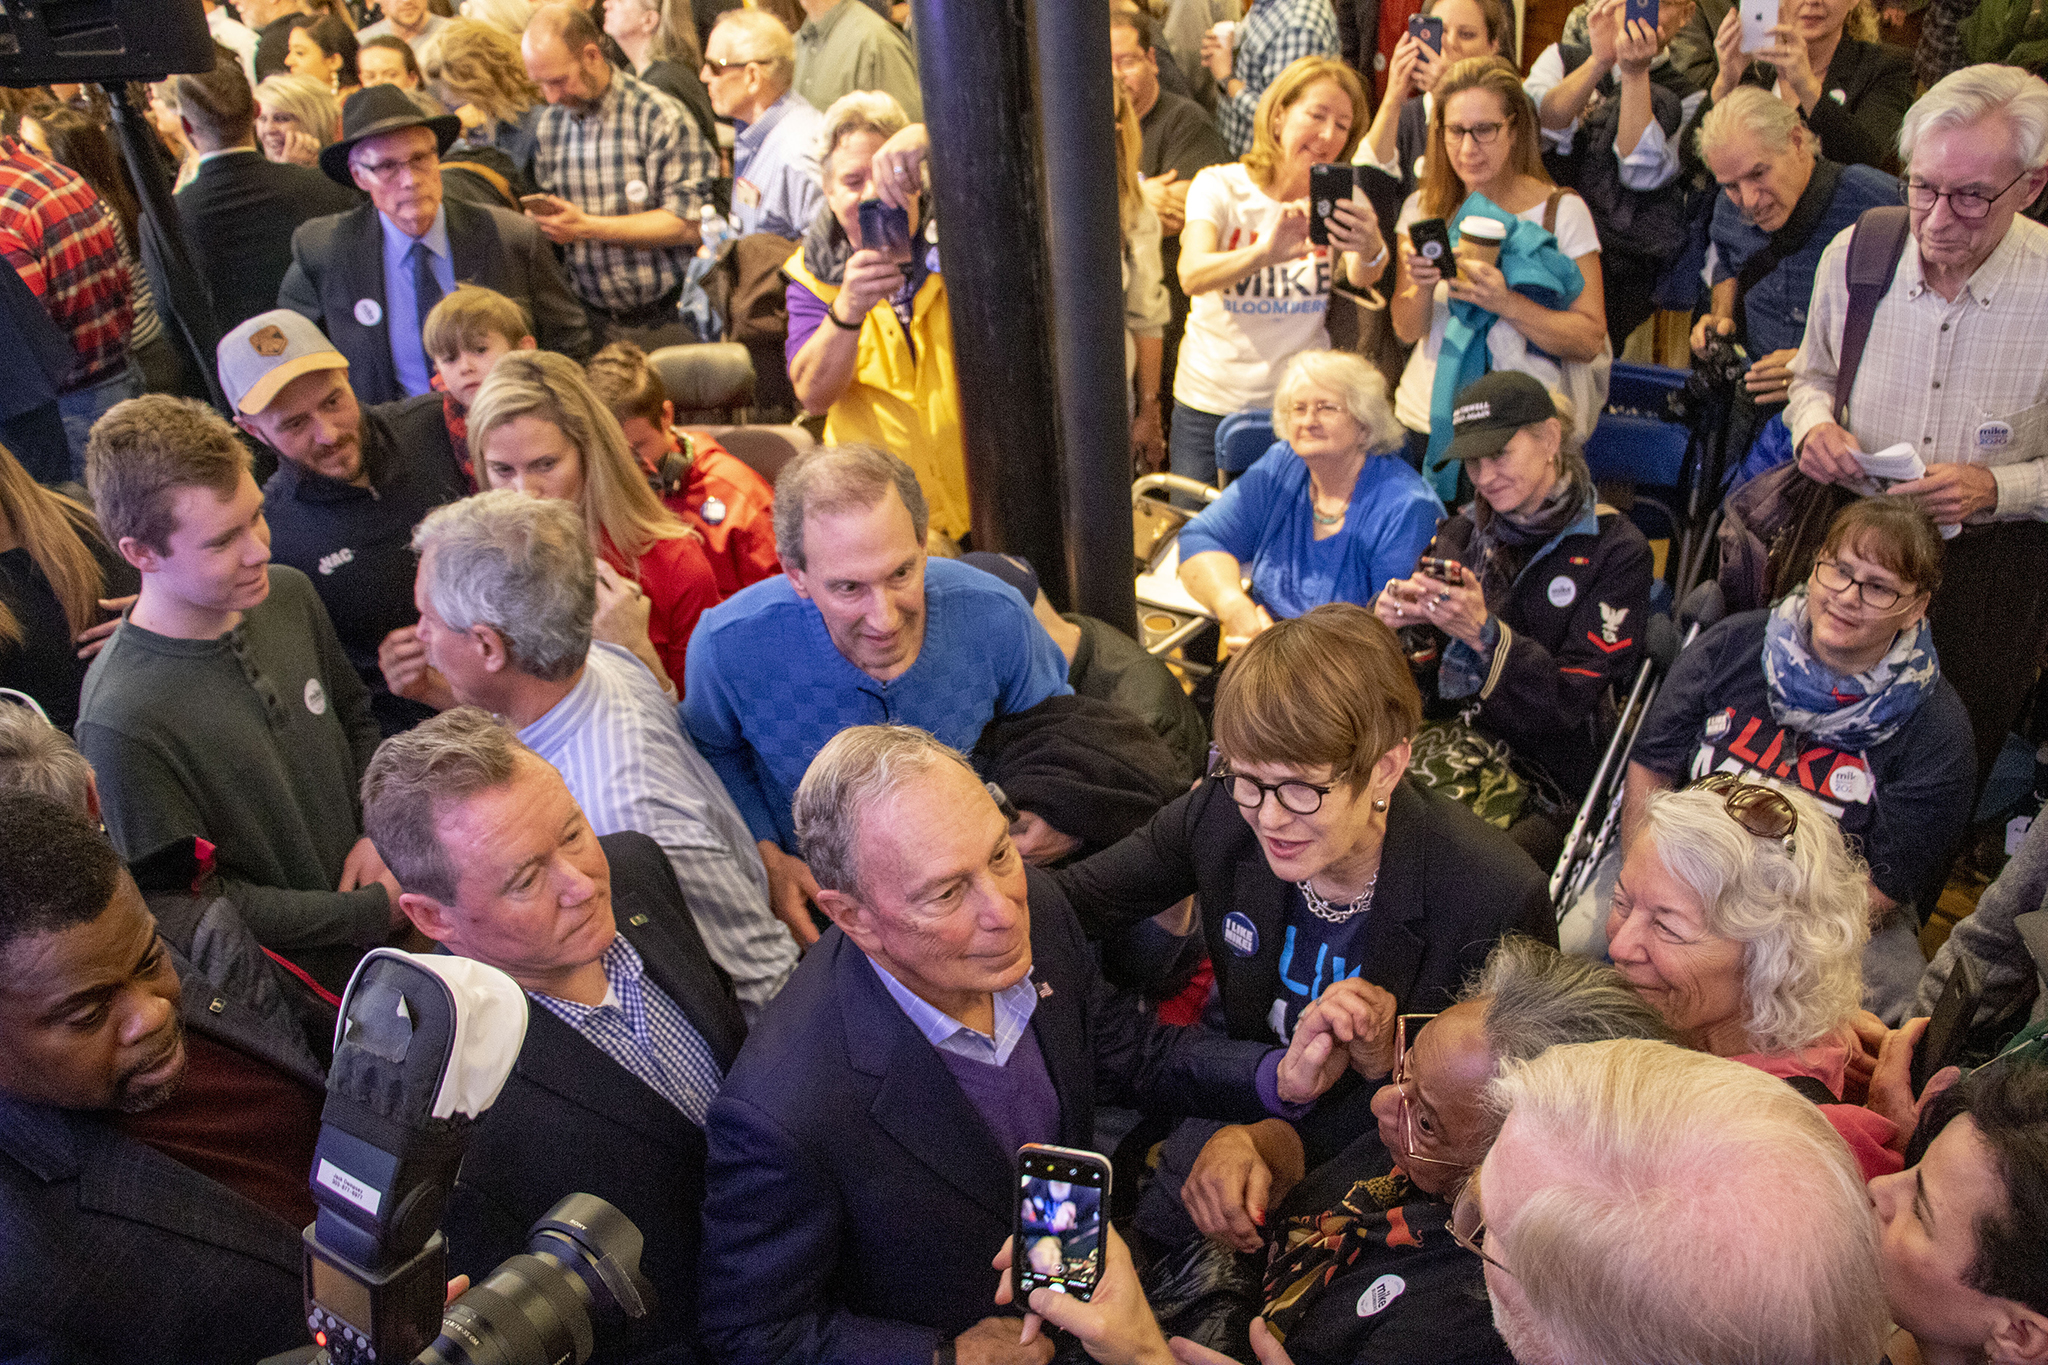 Mike Bloomberg greets supporters during the opening of his new campaign office in downtown Denver, Feb. 1, 2020.